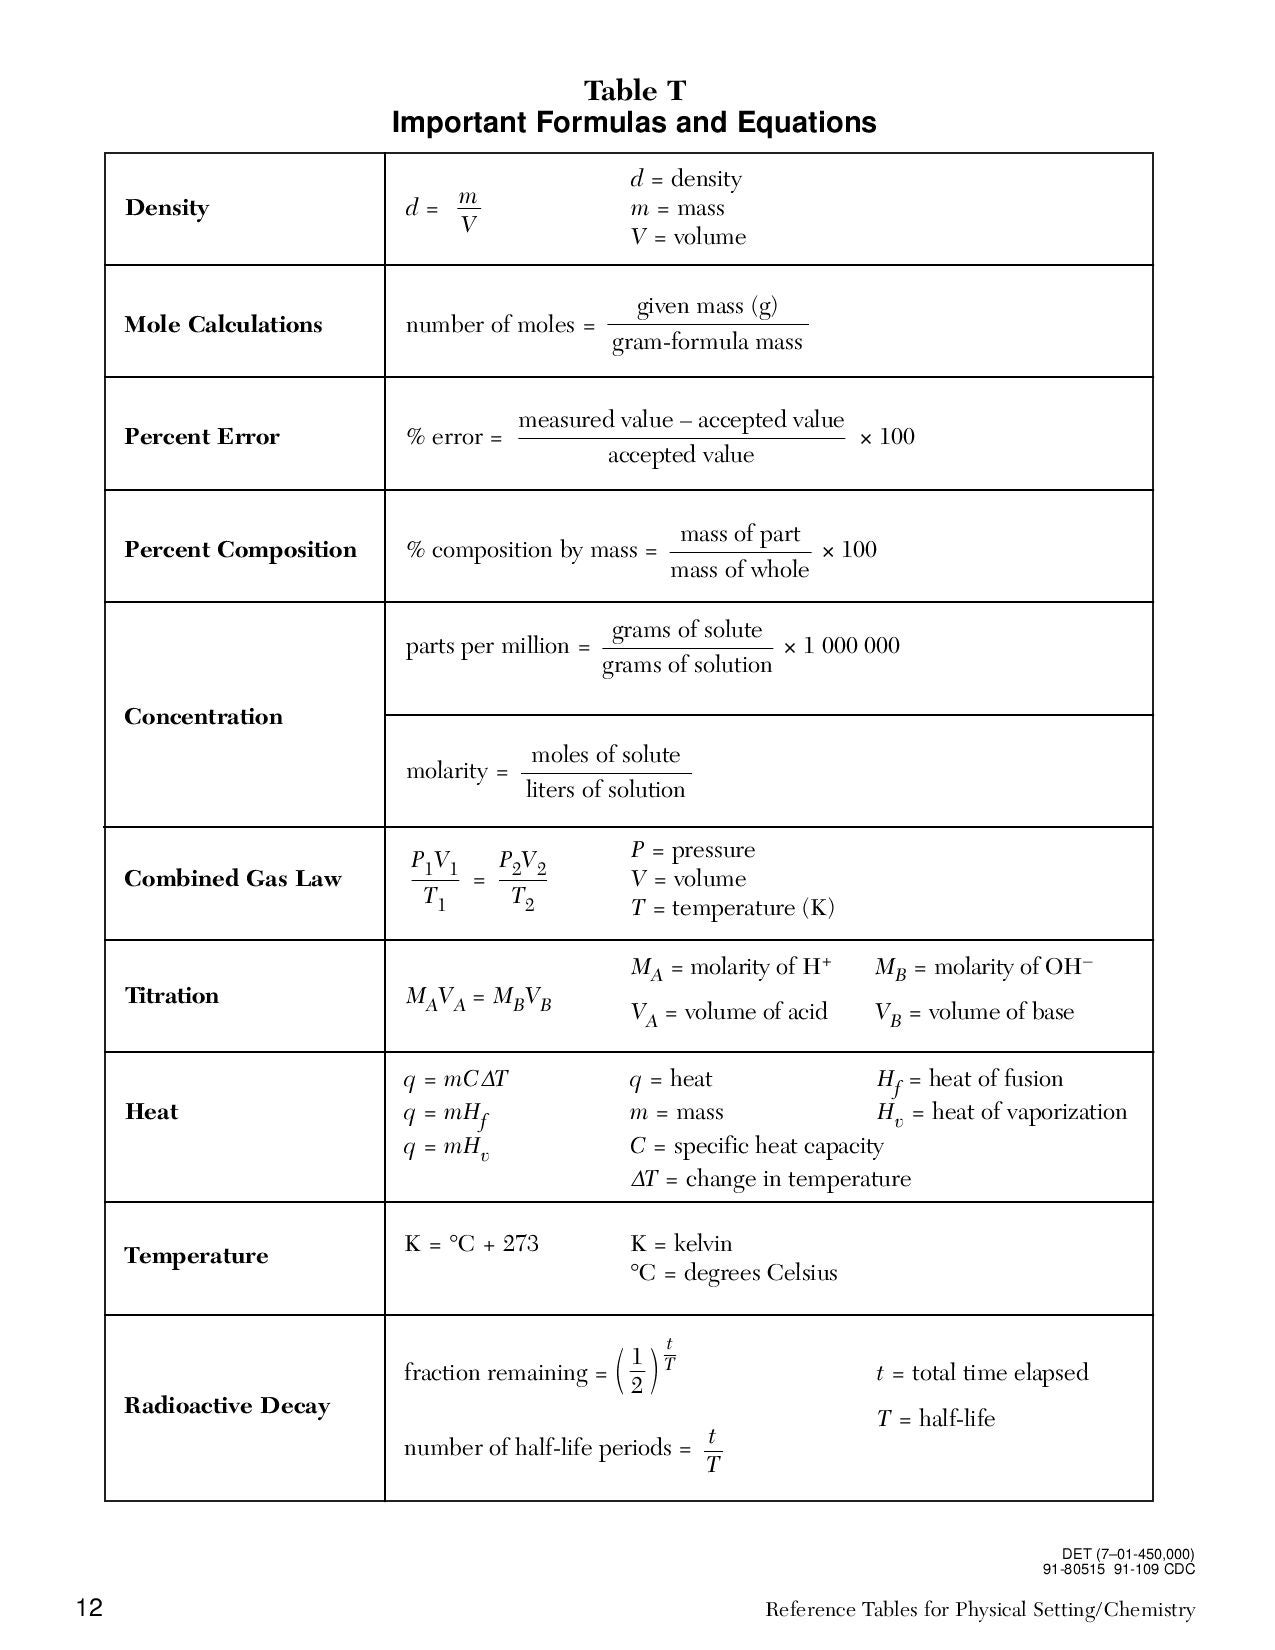 Chemistry Reference Tables By Juan Betancourt Page 12